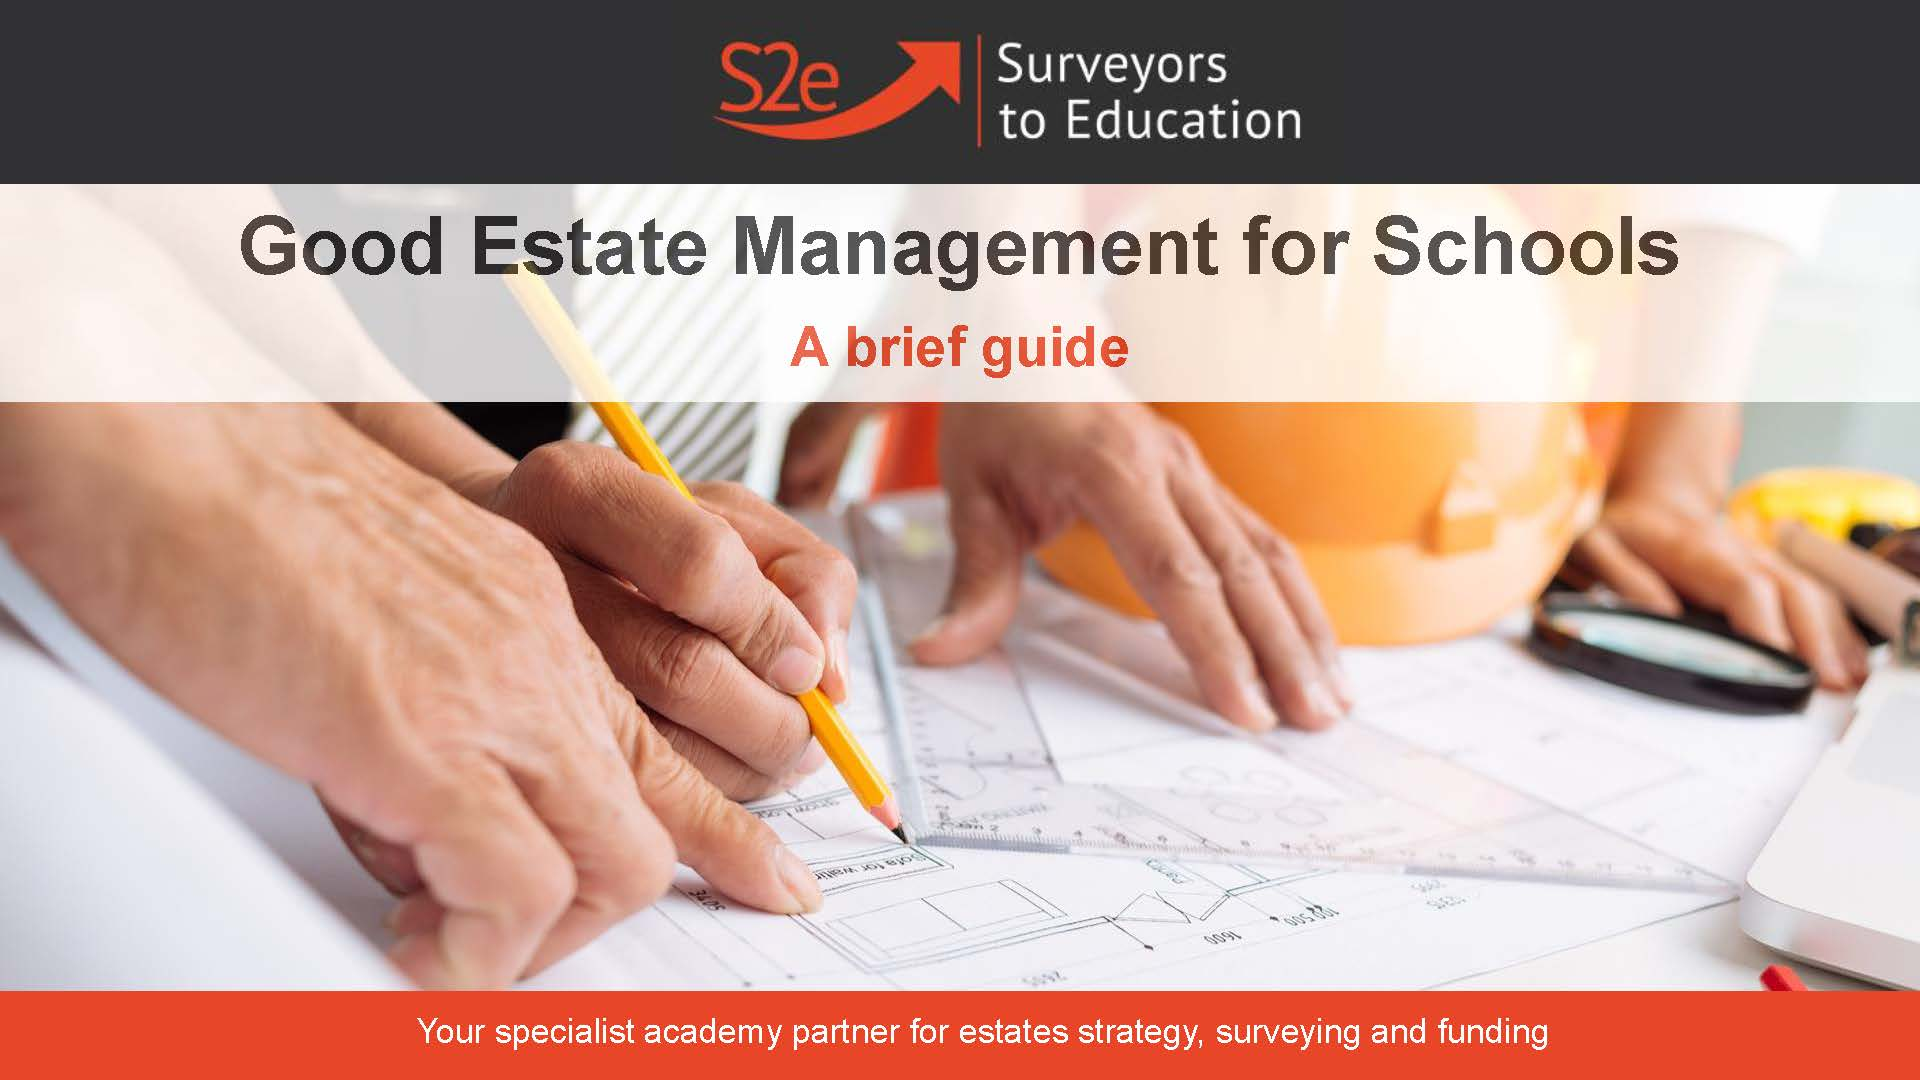 Good Estate Management for Schools - A brief guide